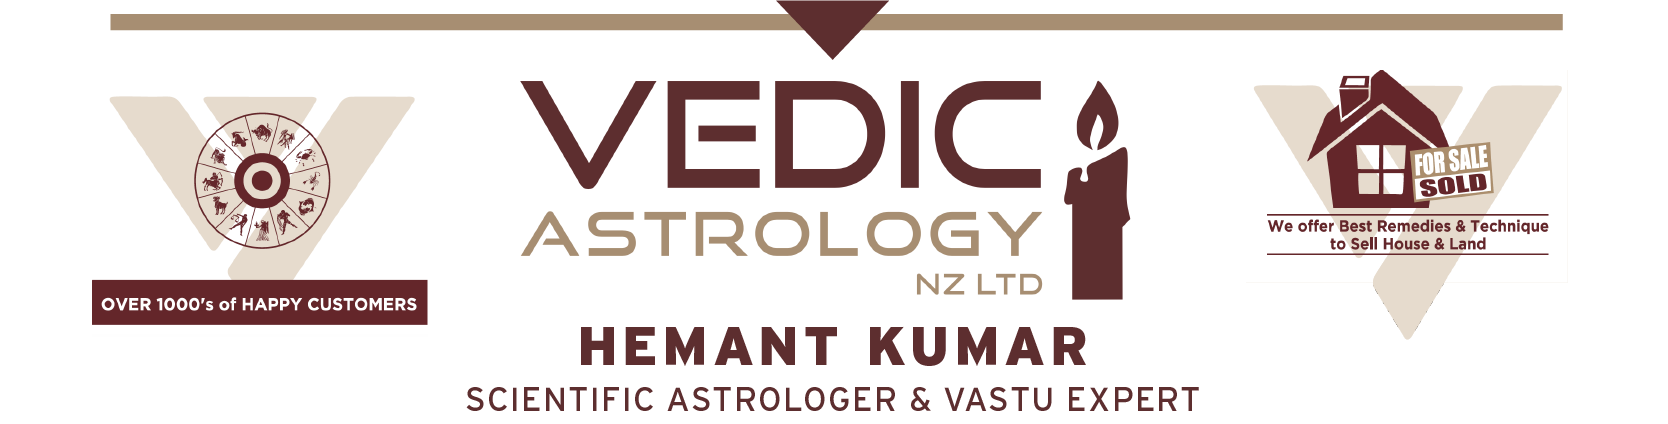 Scientific Astrologer & Vastu Expert